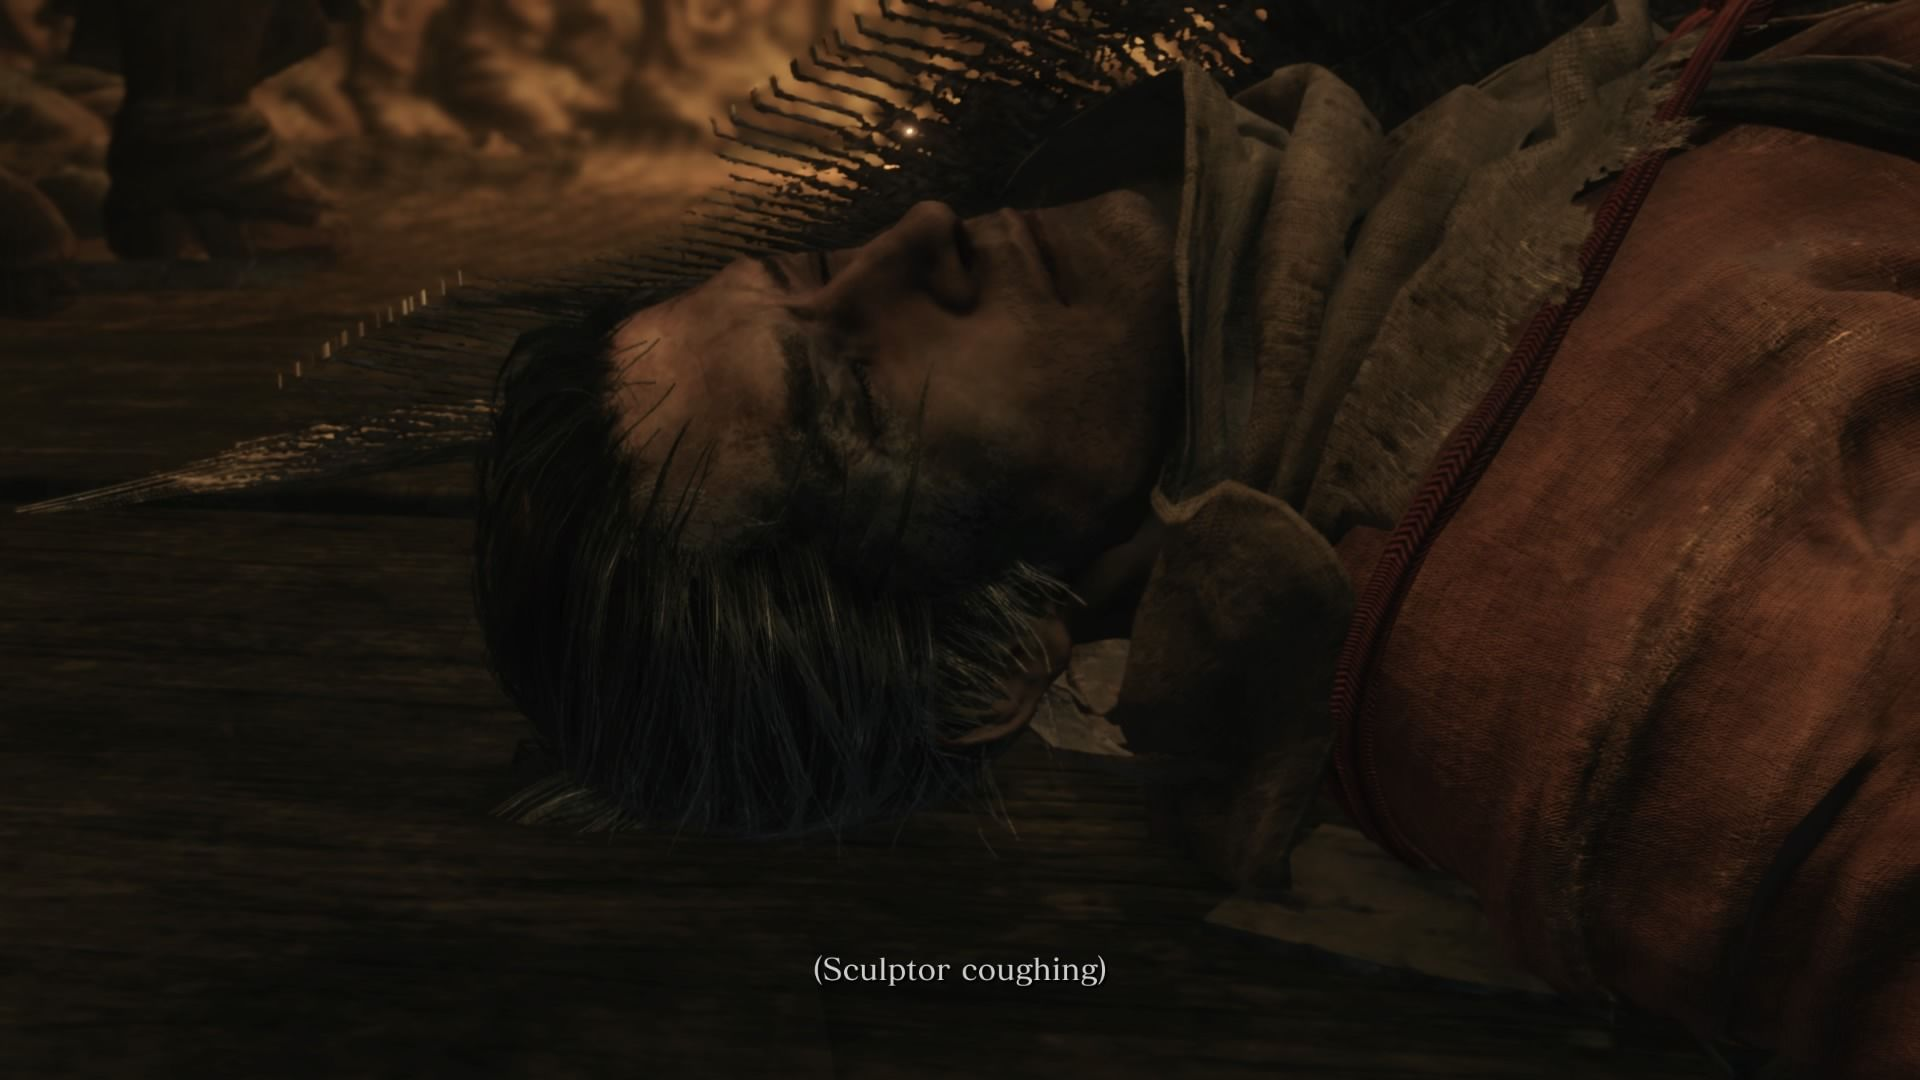 sekiro-rot-essence-dragonrot-cure-sculptor-coughing